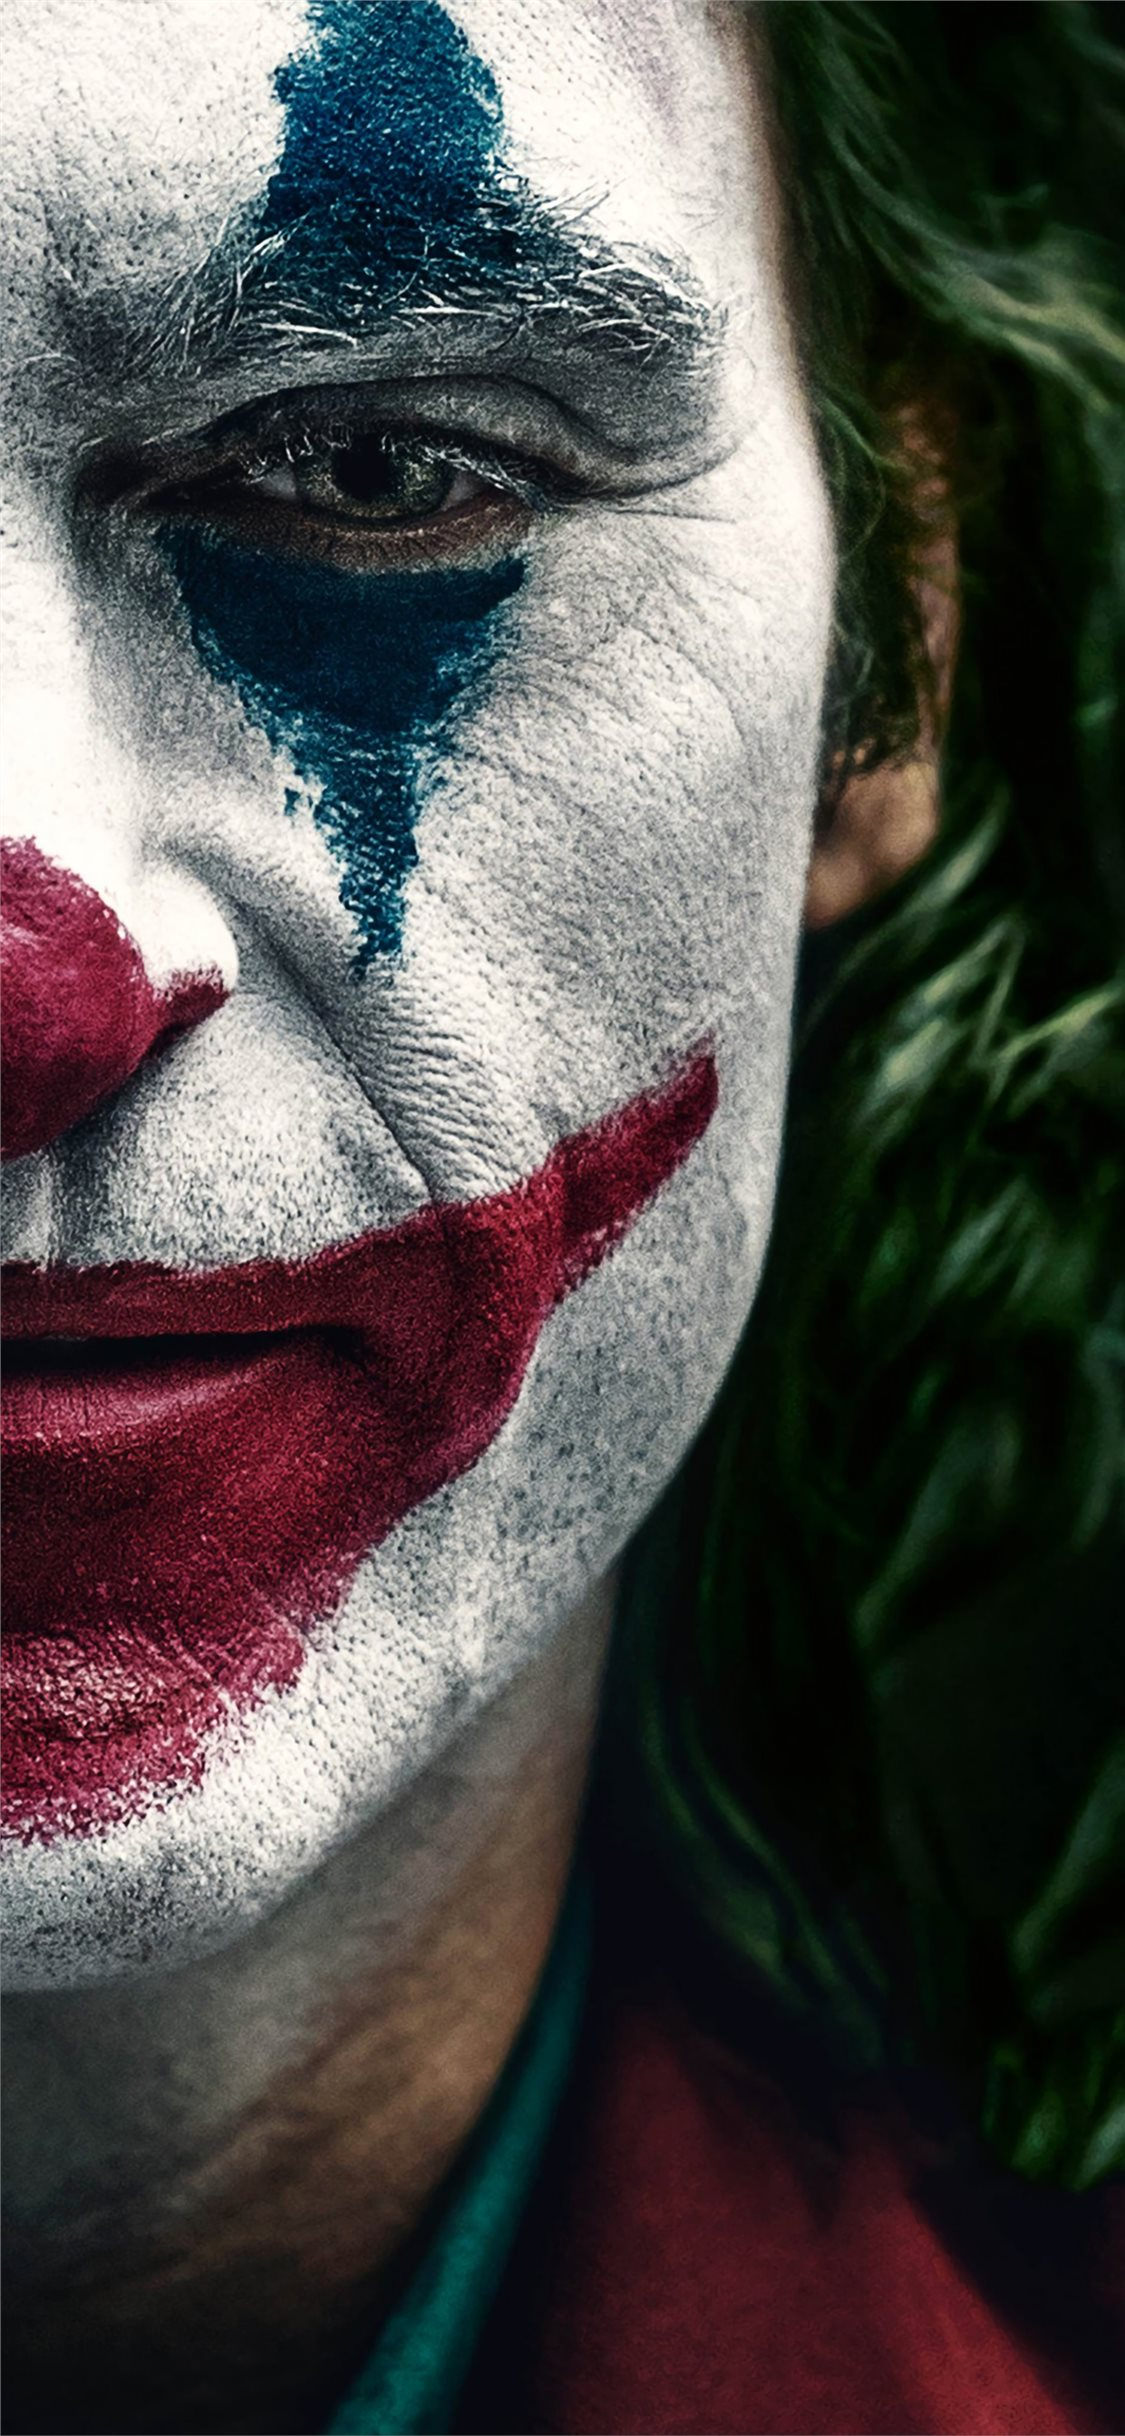 joker 2019 movie iphone x wallpaper ilikewallpaper com